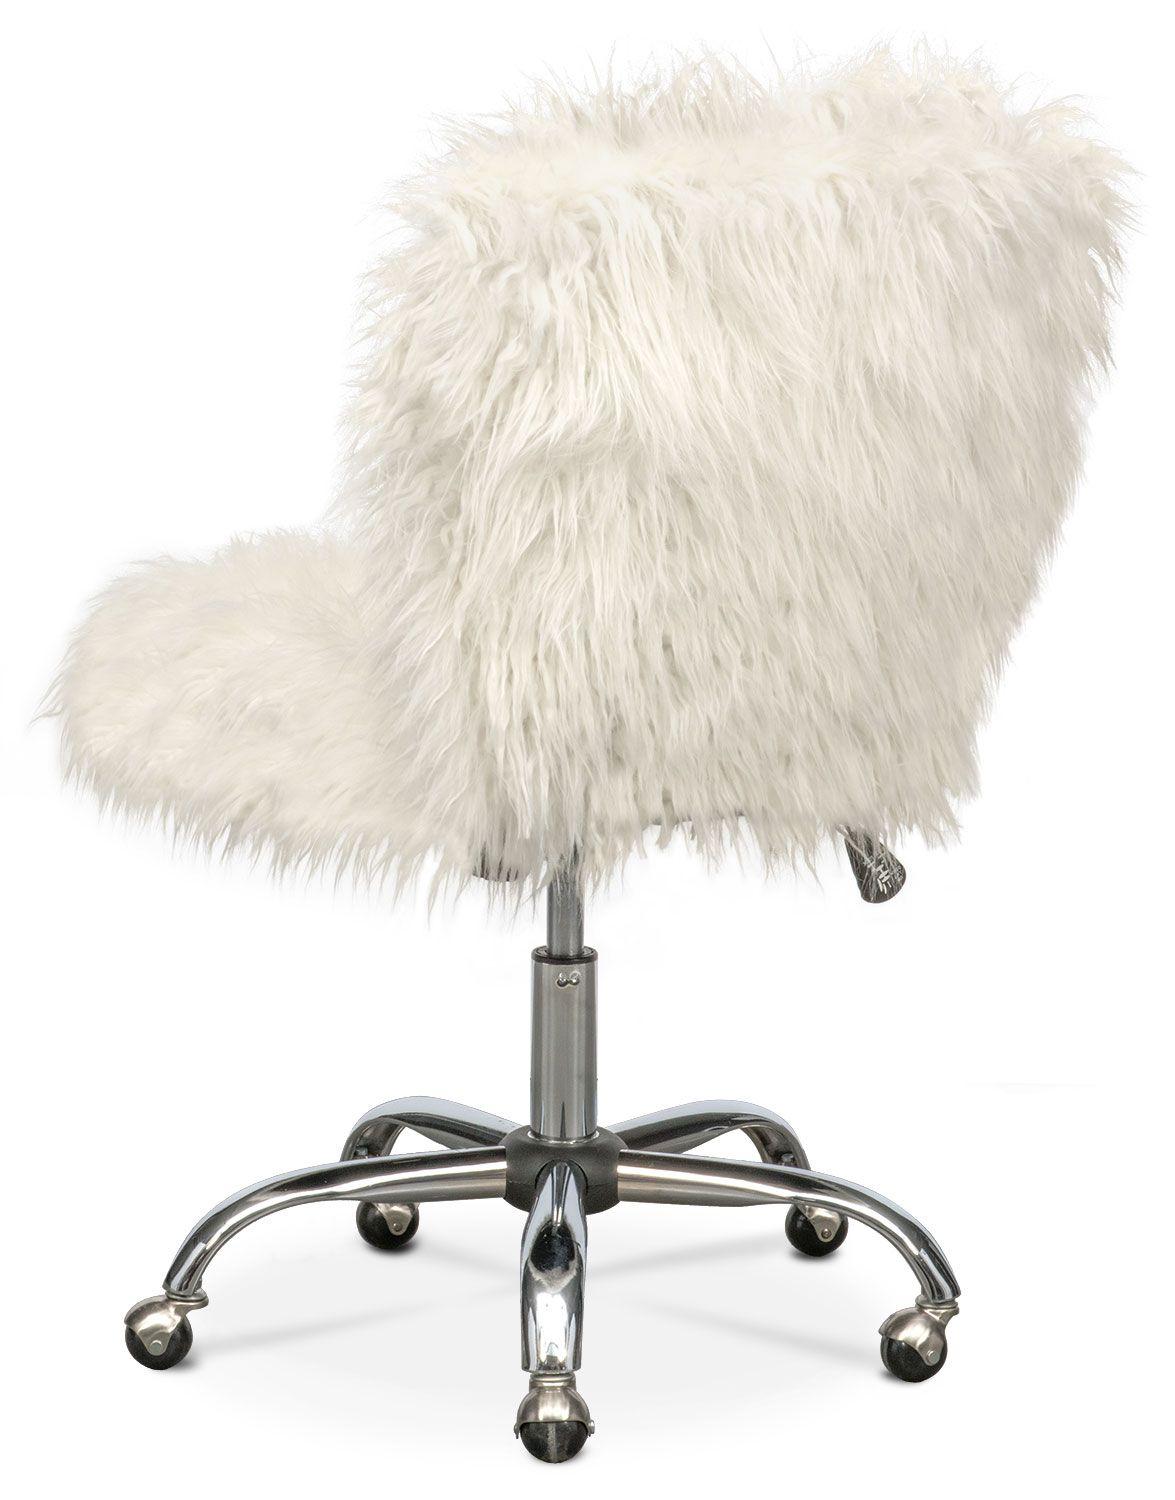 Oh So Shaggy Function Meets Fashion With The Frenzy Office Chair Featuring Gorgeous Shaggy Faux Fur W White Office Chair Office Chair Cheap Office Furniture